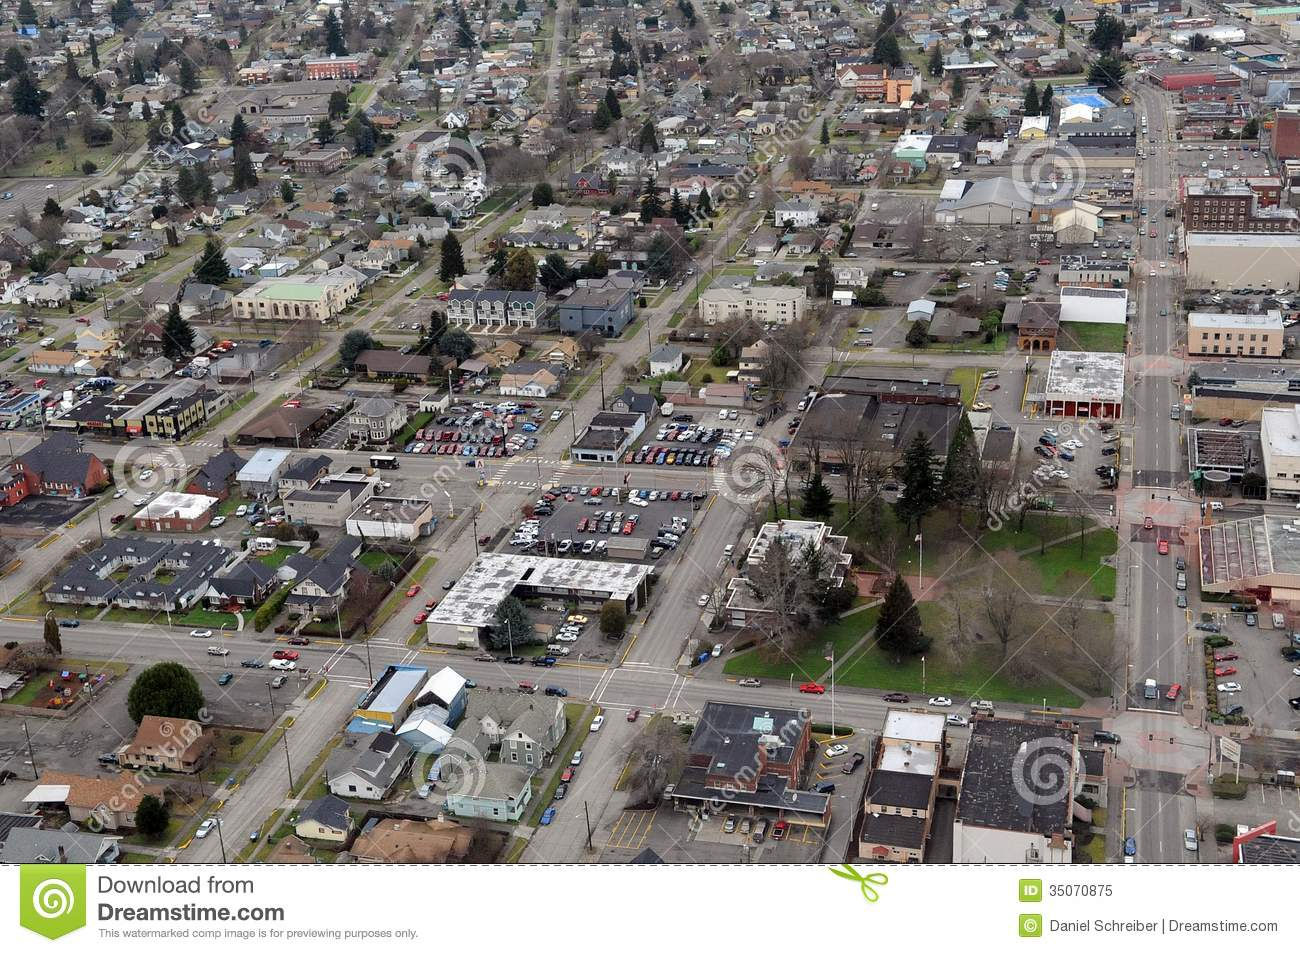 maps washington state with Royalty Free Stock Photo Centralia Washington State Gridded Streets Old Image35070875 on Seattle SeattleTa aIntl further Acuario De La Bahia De Monterey likewise Royalty Free Stock Photo Centralia Washington State Gridded Streets Old Image35070875 additionally Top 23 Maps Charts Explain Results 2016 Us Presidential Elections besides Maps.